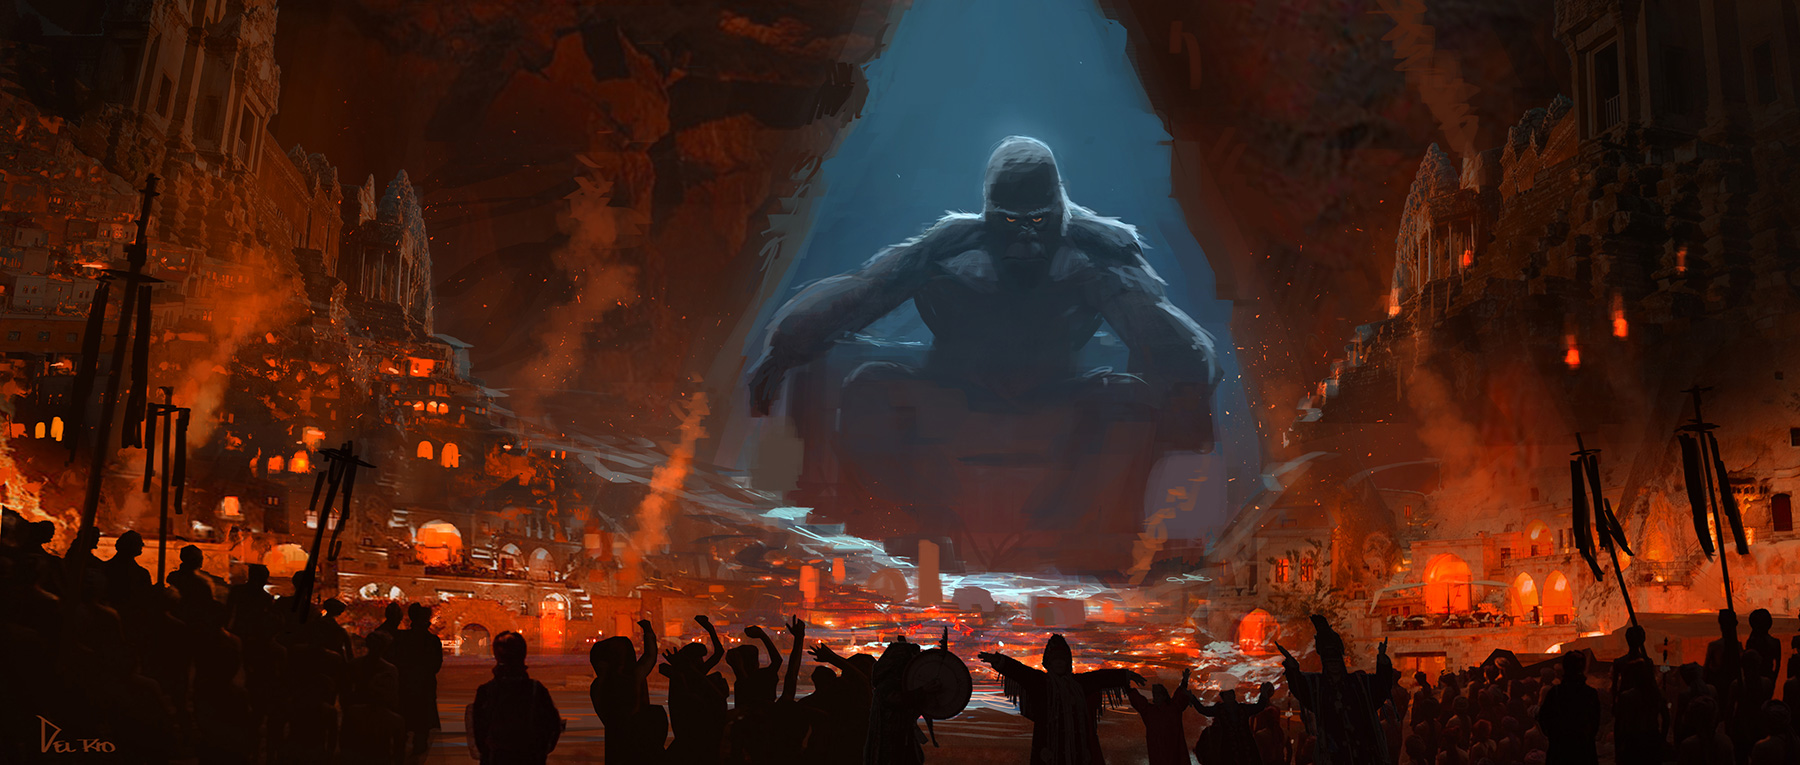 Lord Of The Rings Wallpaper Quotes Kong Skull Island Concept Art By Eddie Del Rio Concept